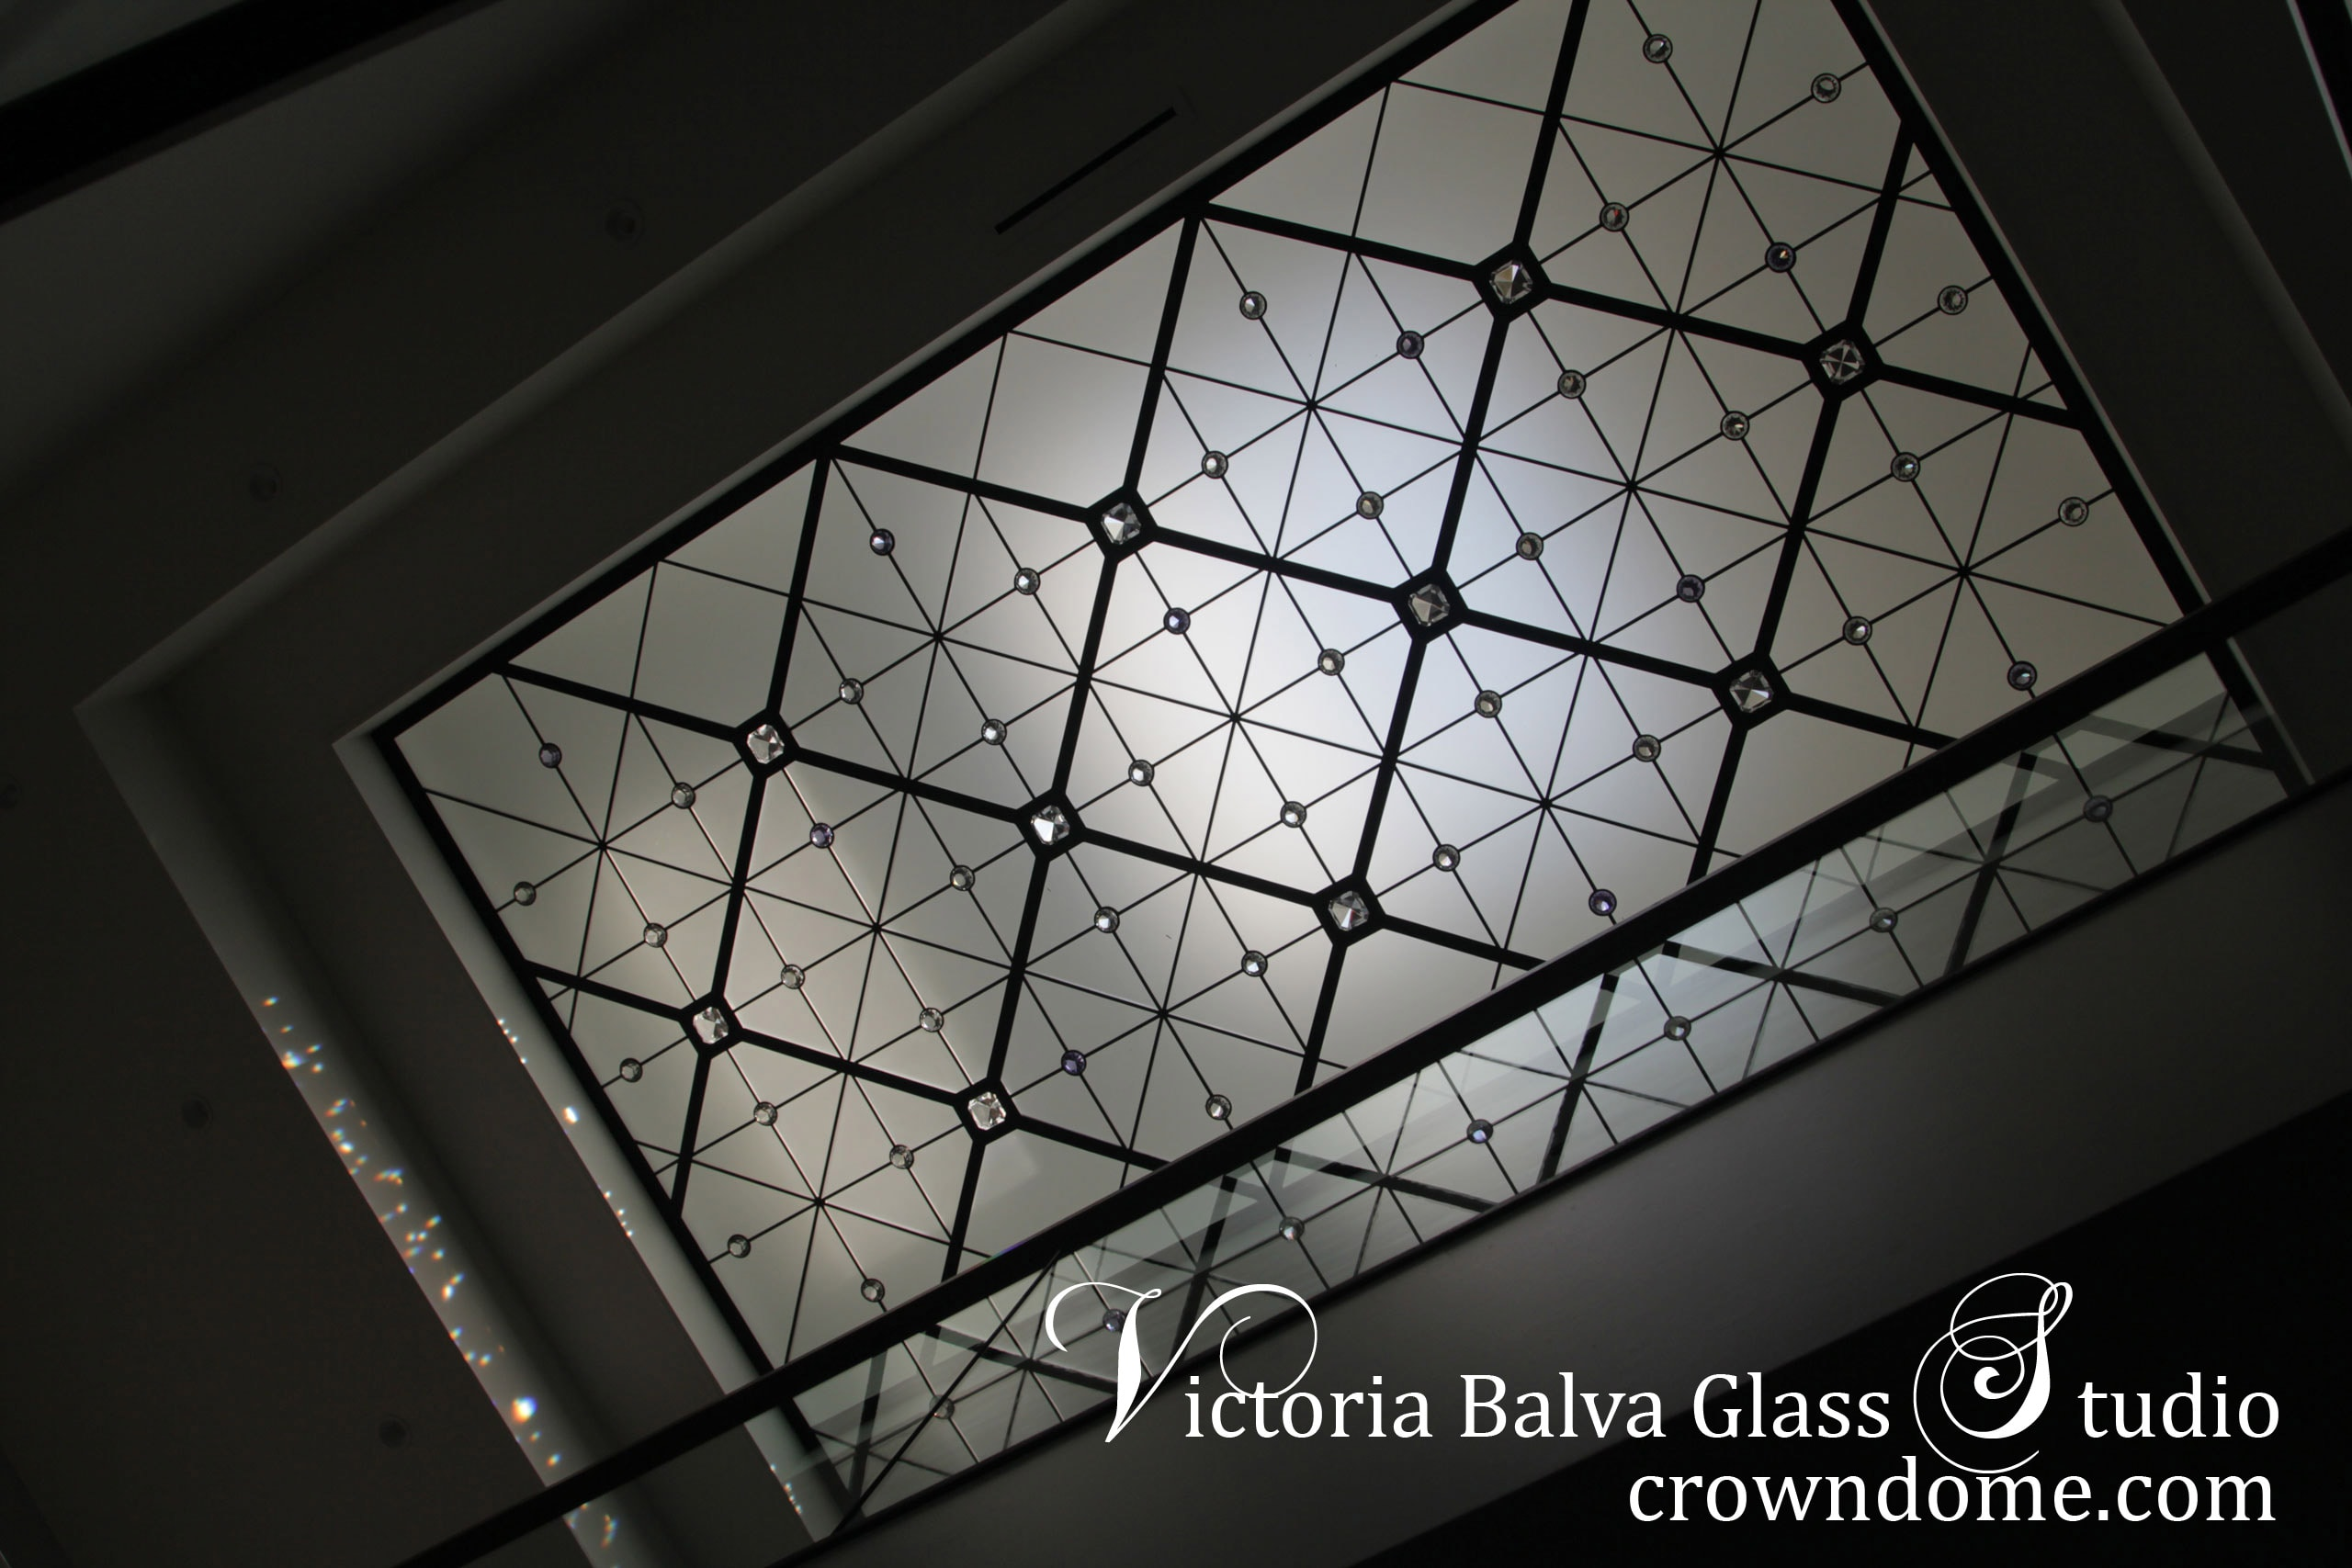 Large leaded glass decorative skylight with clear accent jewels in minimalistic contemprorary style for a foyer of a private residence in Toronto